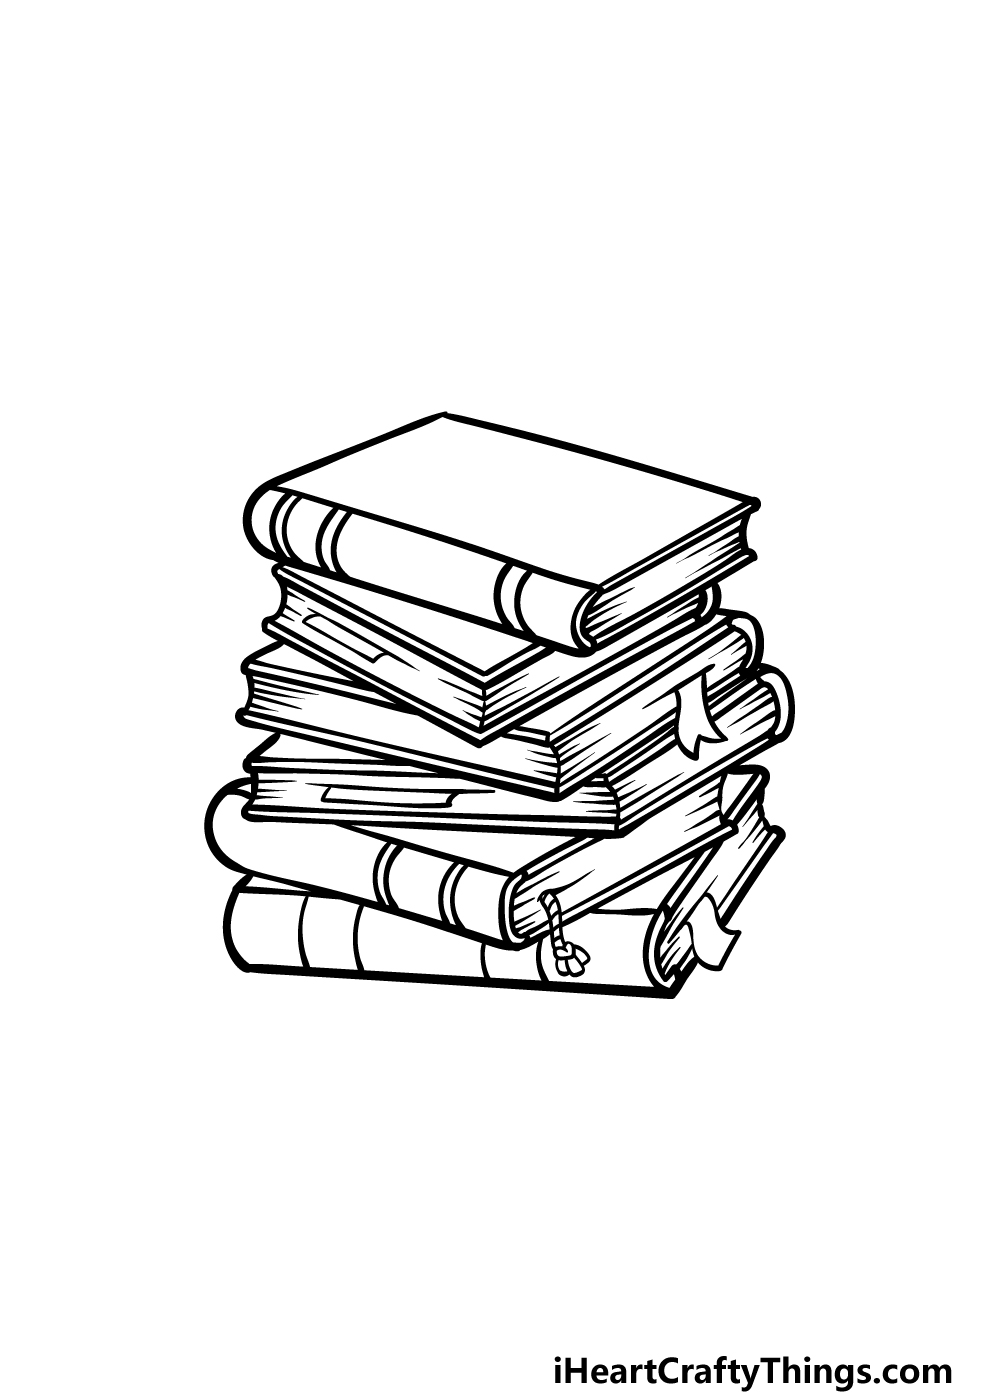 drawing a stack of books step 5